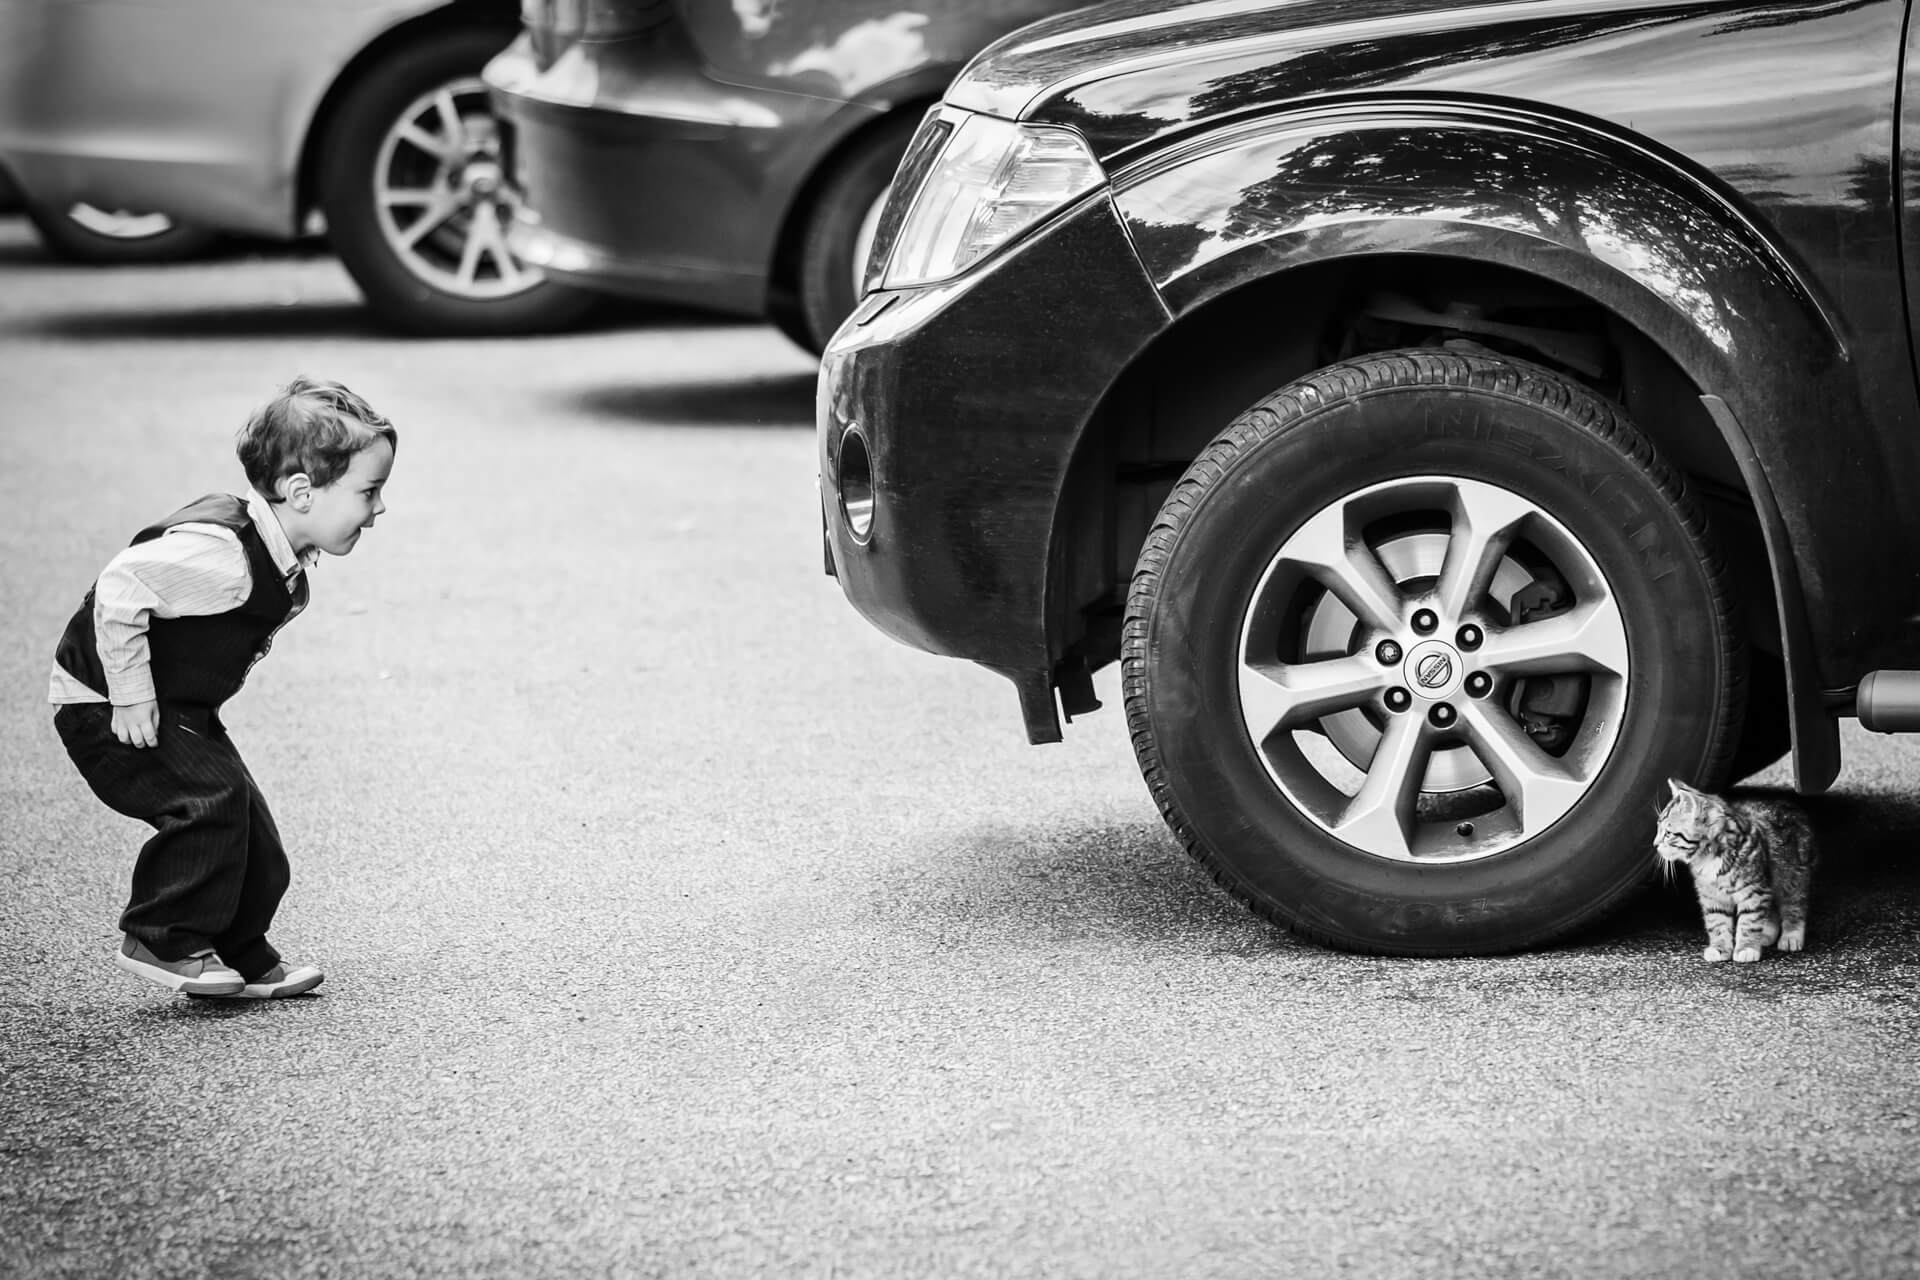 pageboy looking at a cat under a car wheel